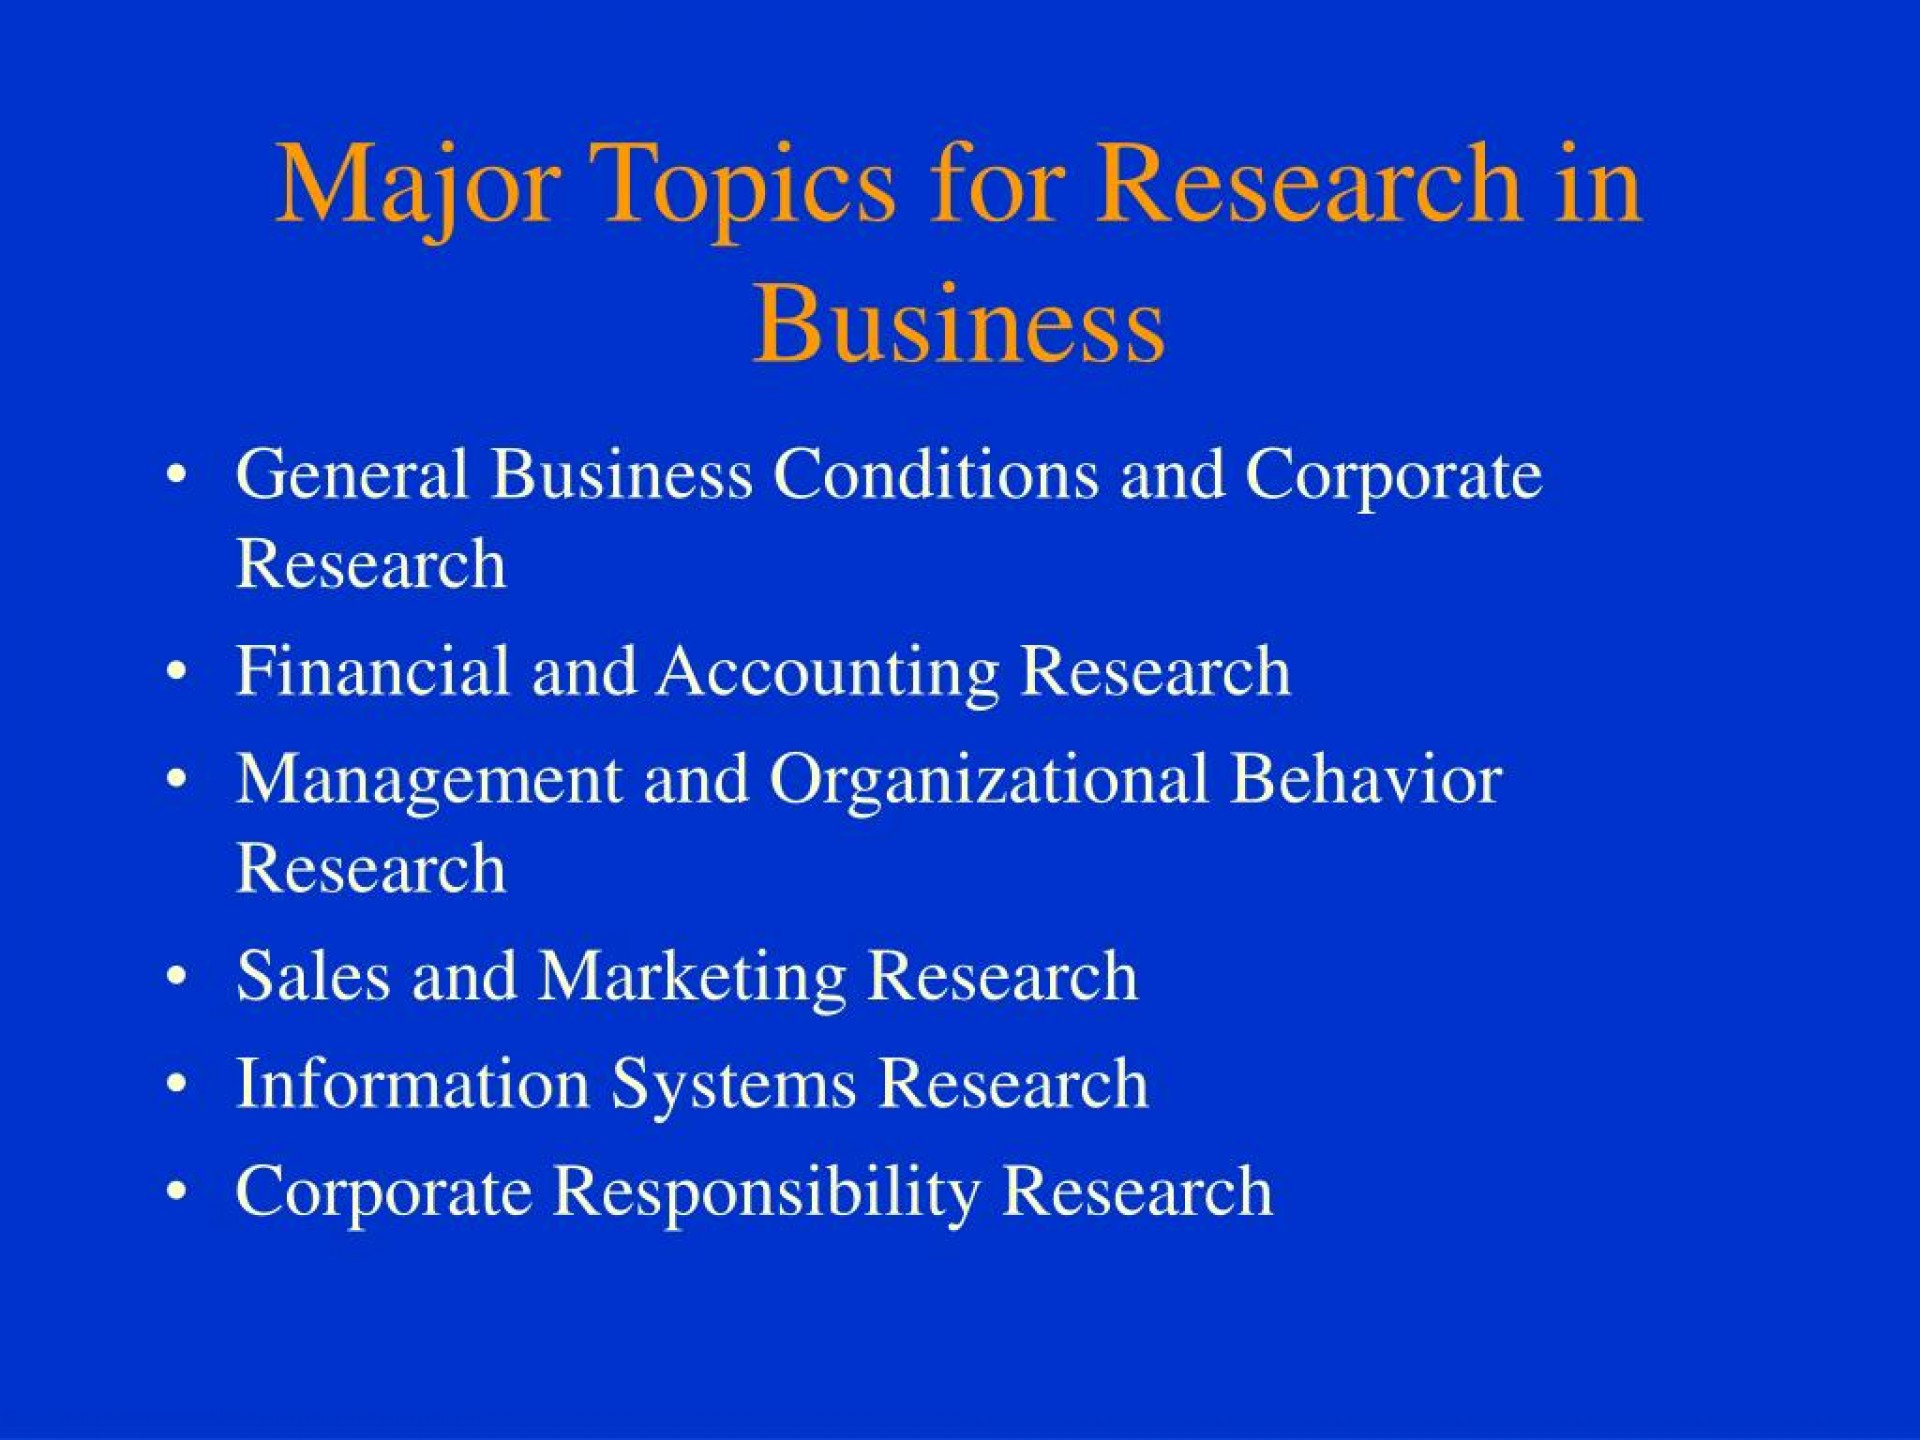 016 Research Paper Major Topics For In Business L Dreaded Interesting Administration Management Pdf Information Systems 1920